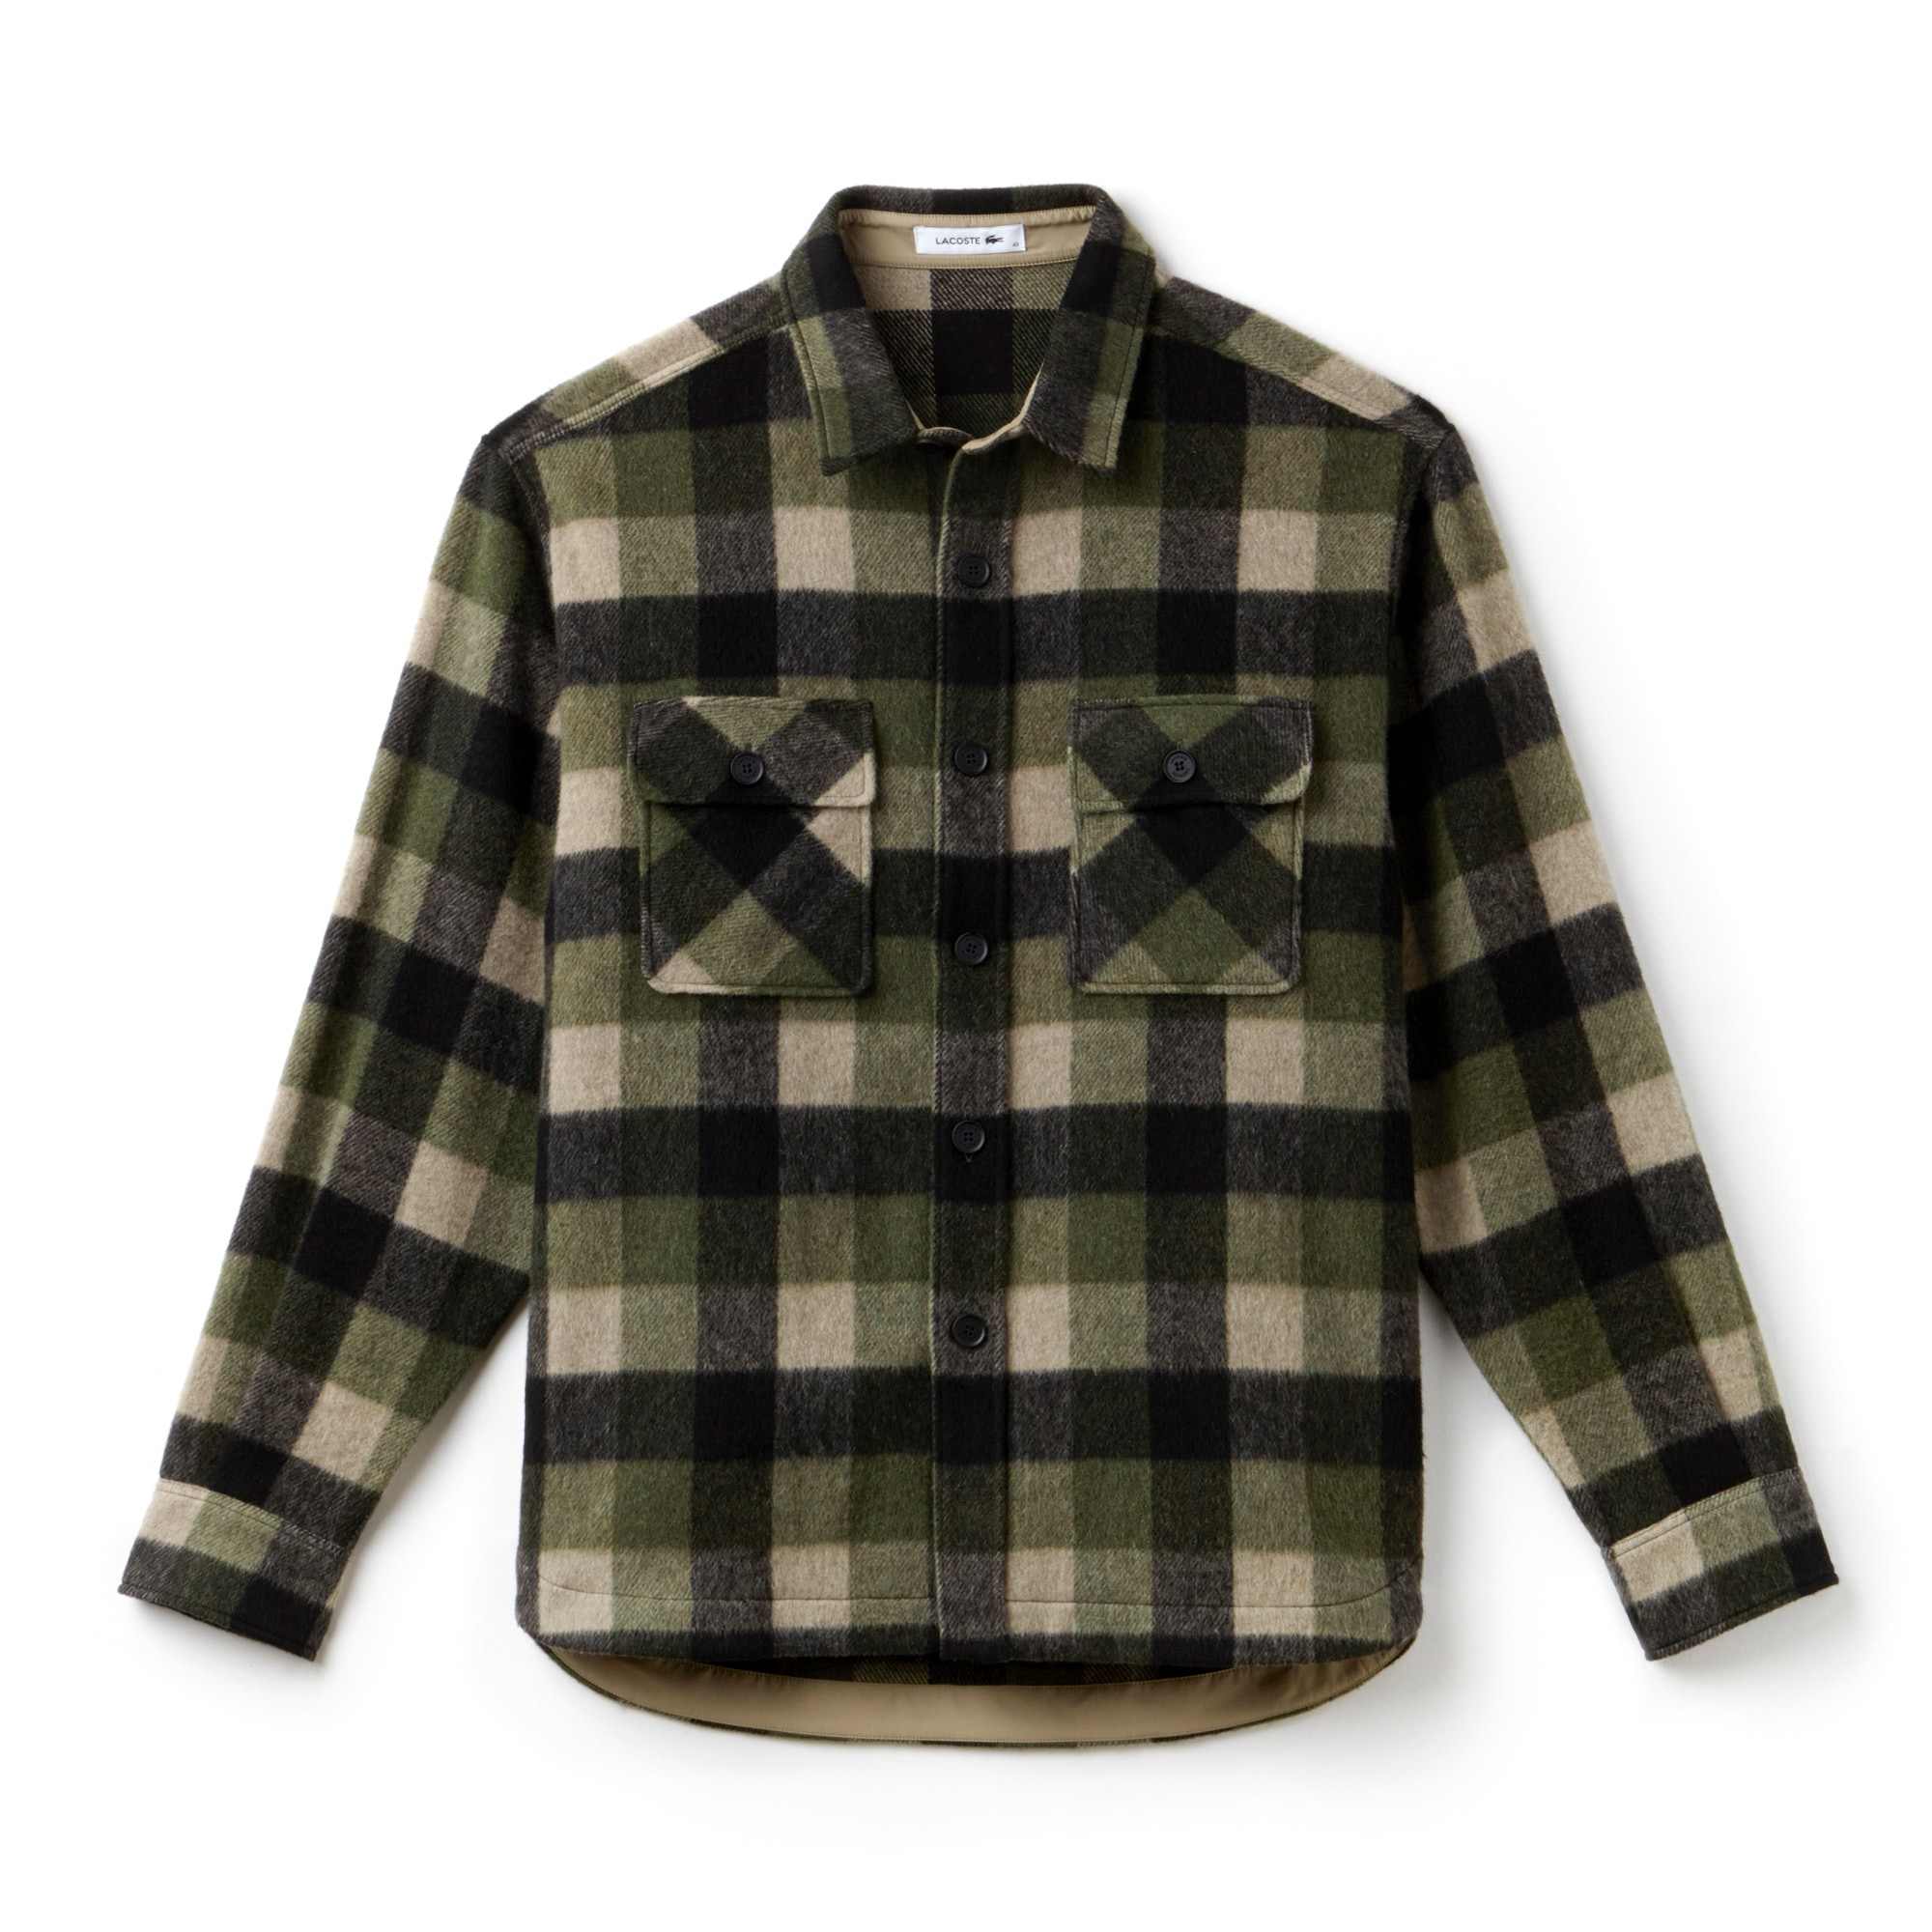 Men's Fashion Show Check Flannel Shirt With Chest Pockets